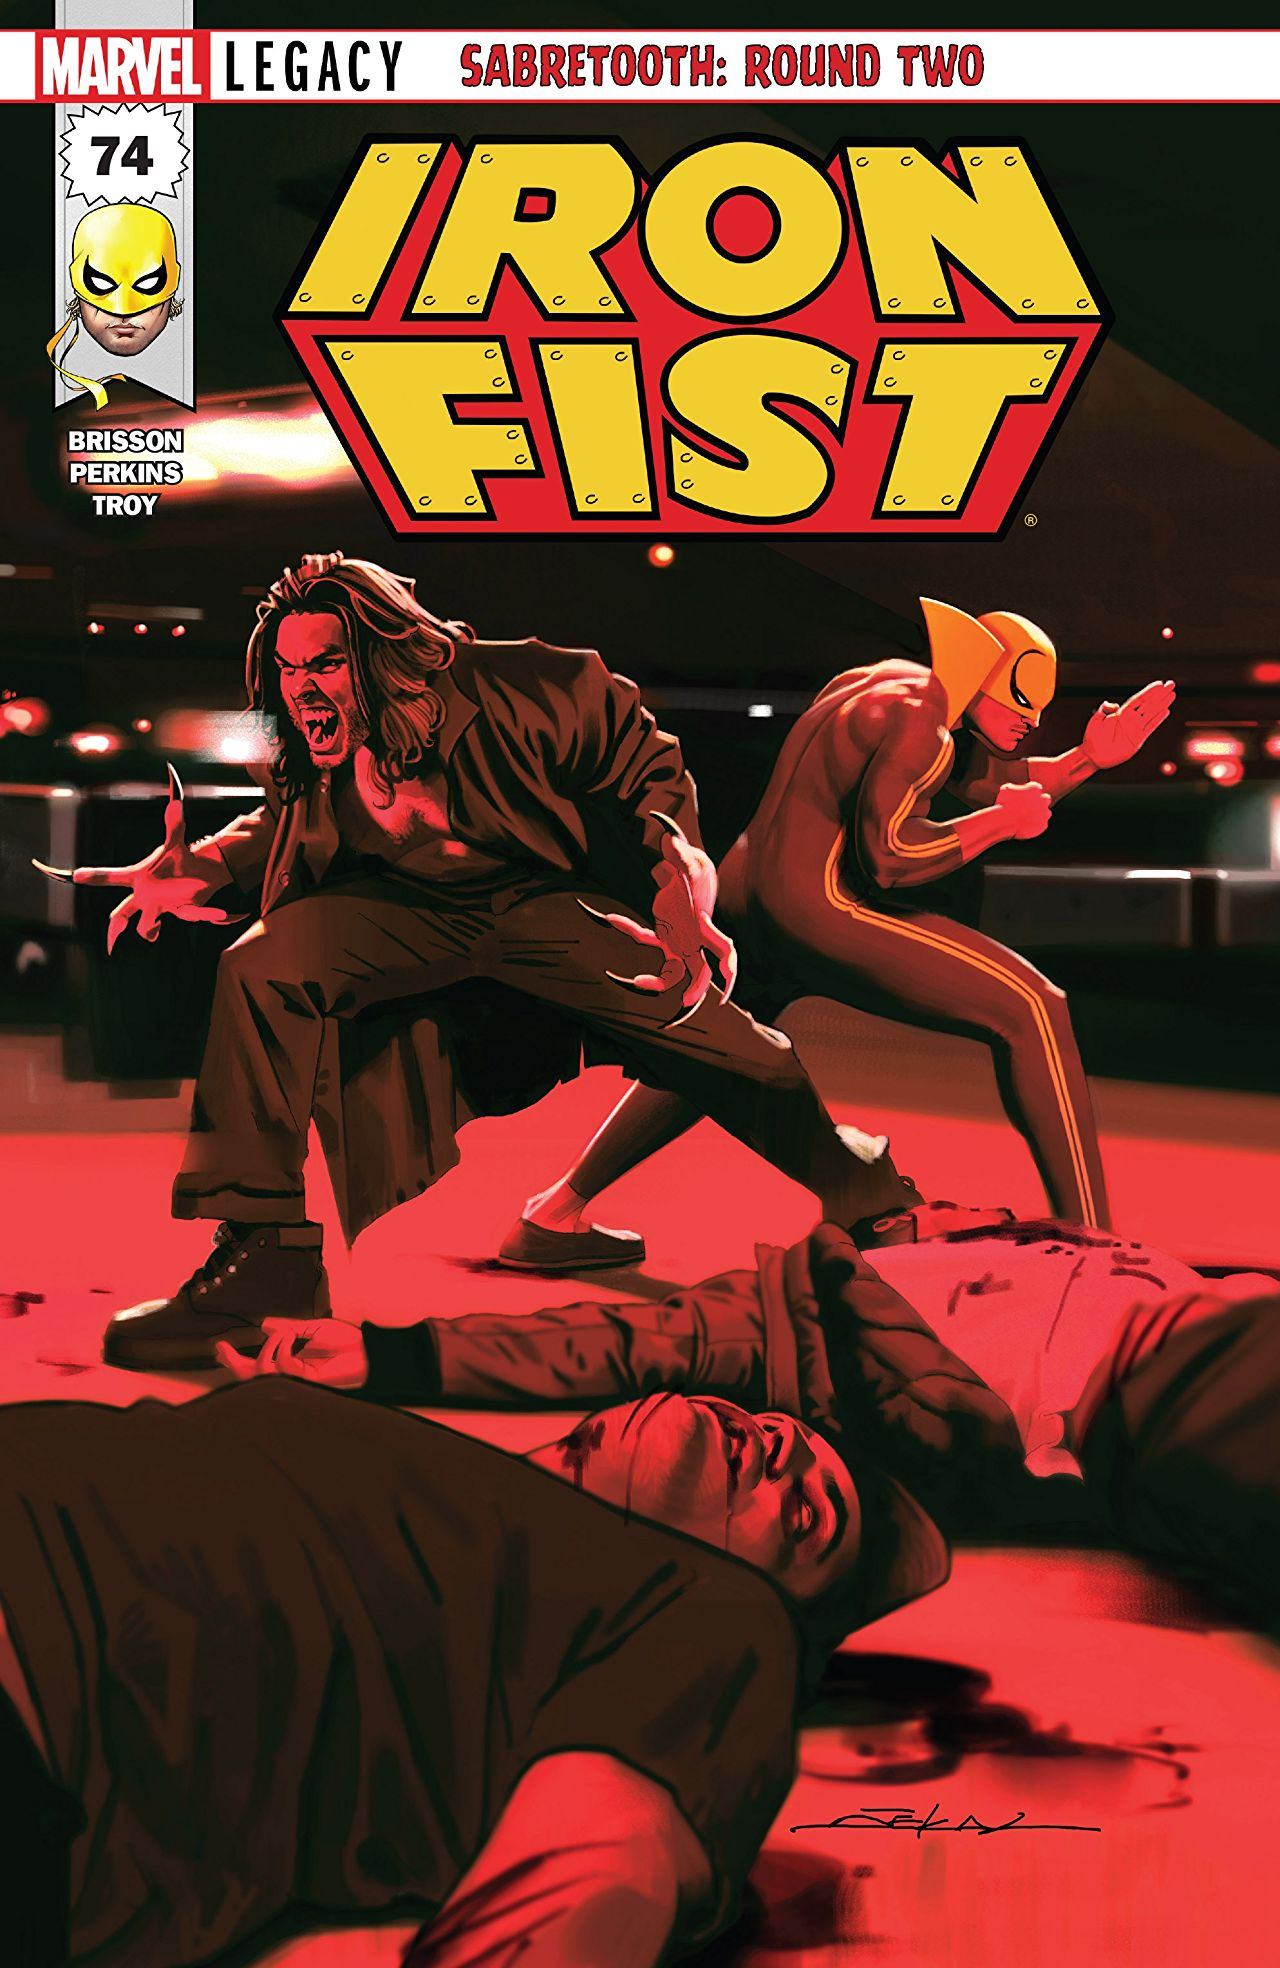 3 Reasons Why: 'Iron Fist Vol. 2: Sabertooth - Round 2' packs a lot of punch